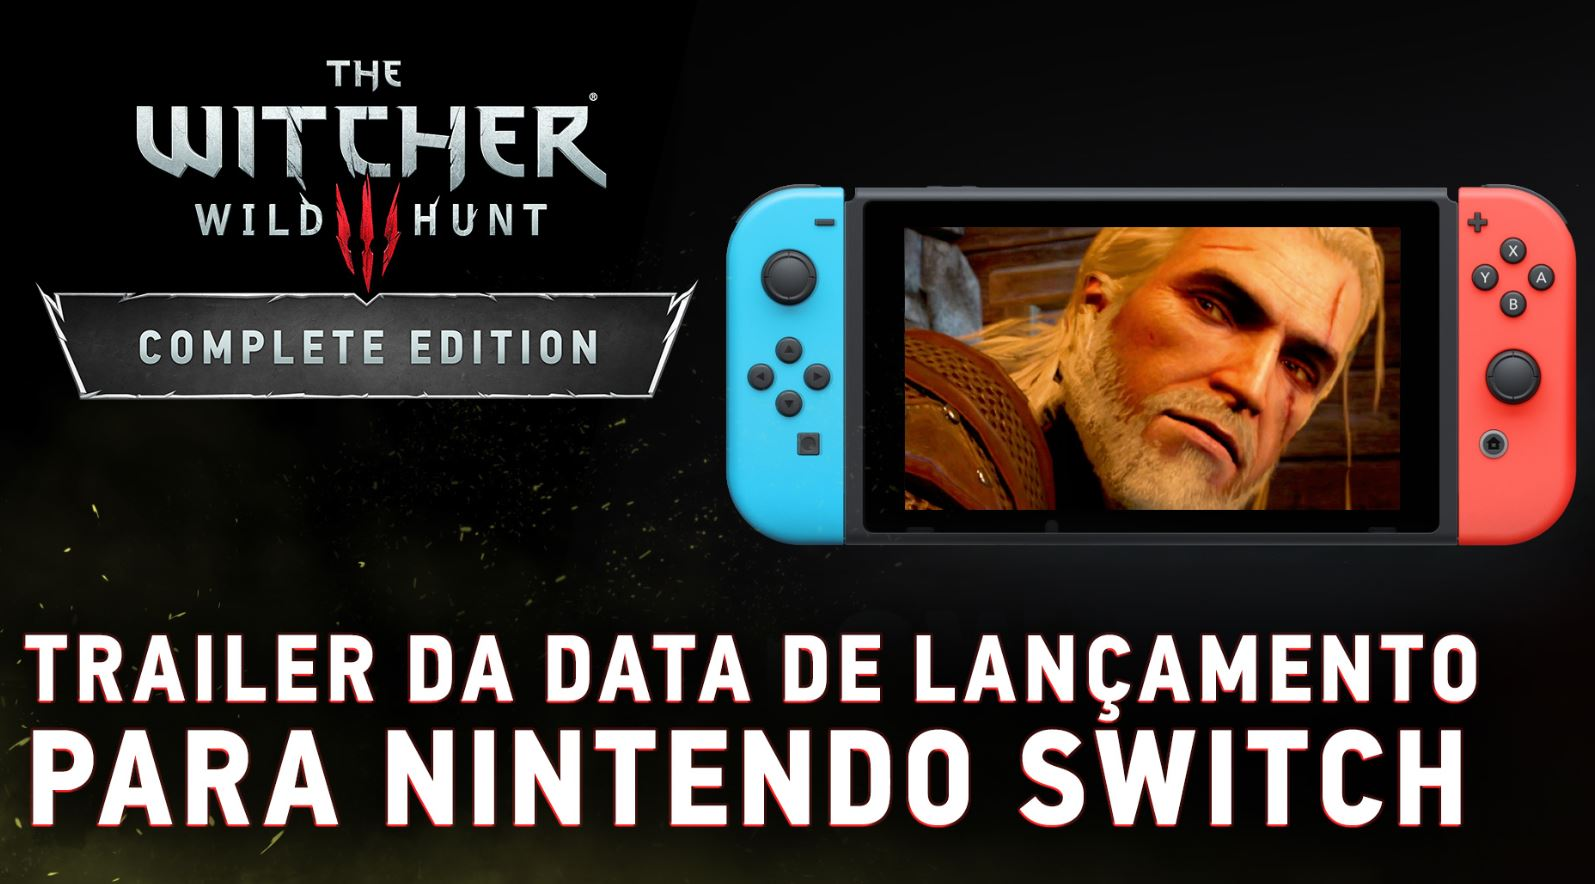 Gamescom 2019 | Gameplay e data de lançamento de The Witcher 3 para Nintendo Switch são revelados!